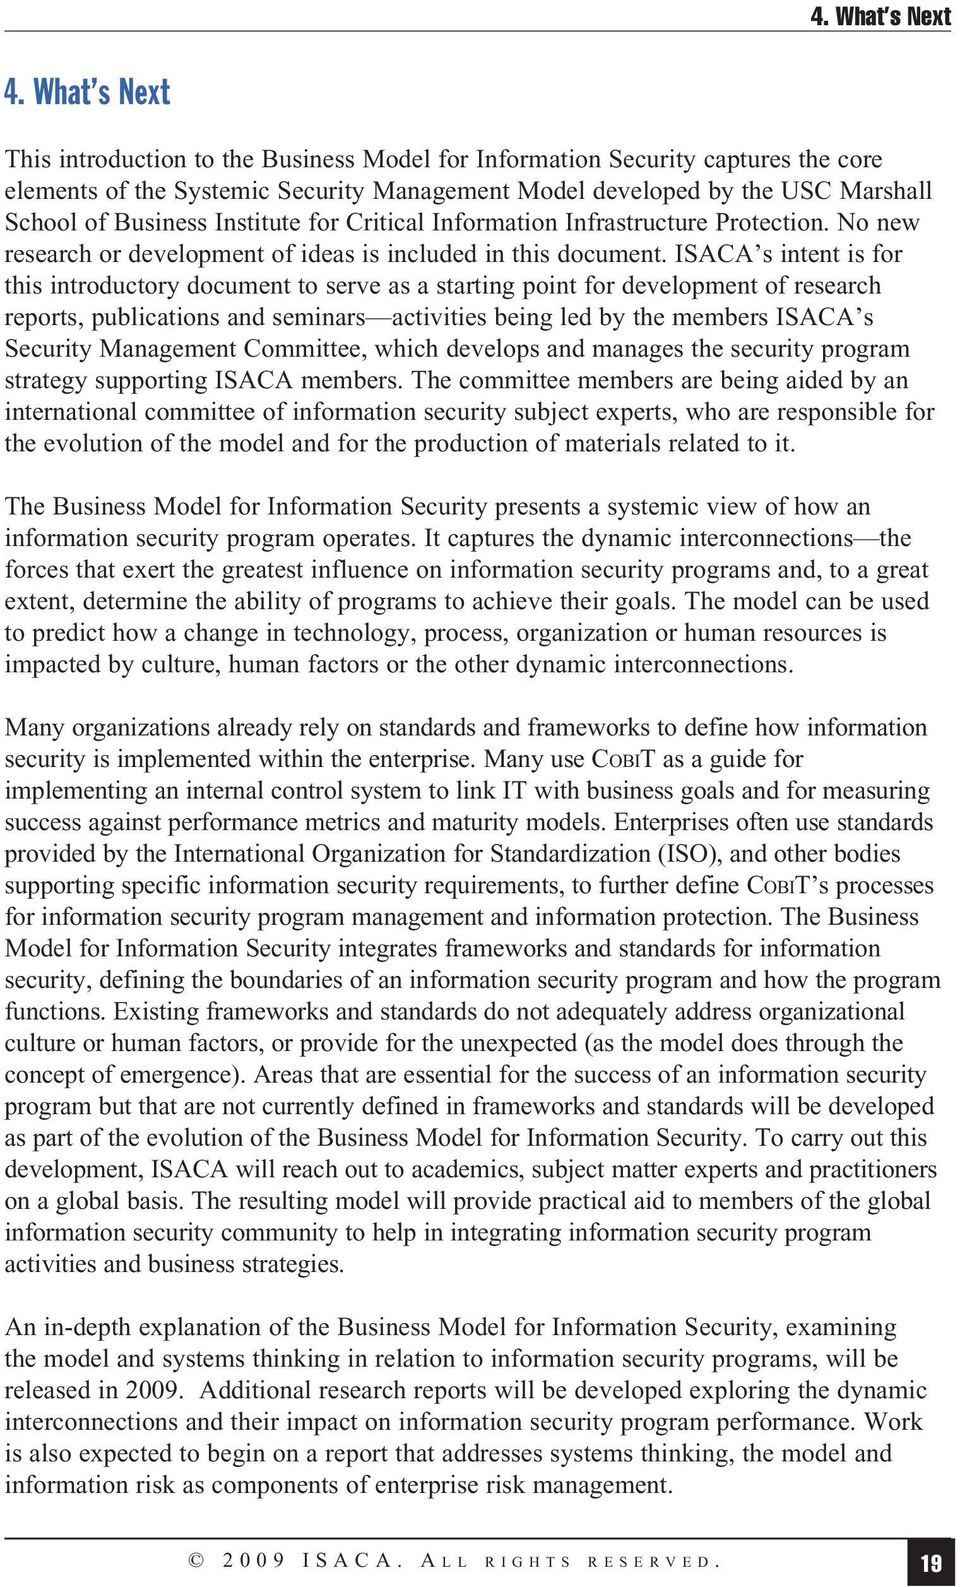 Institute for Critical Information Infrastructure Protection. No new research or development of ideas is included in this document.